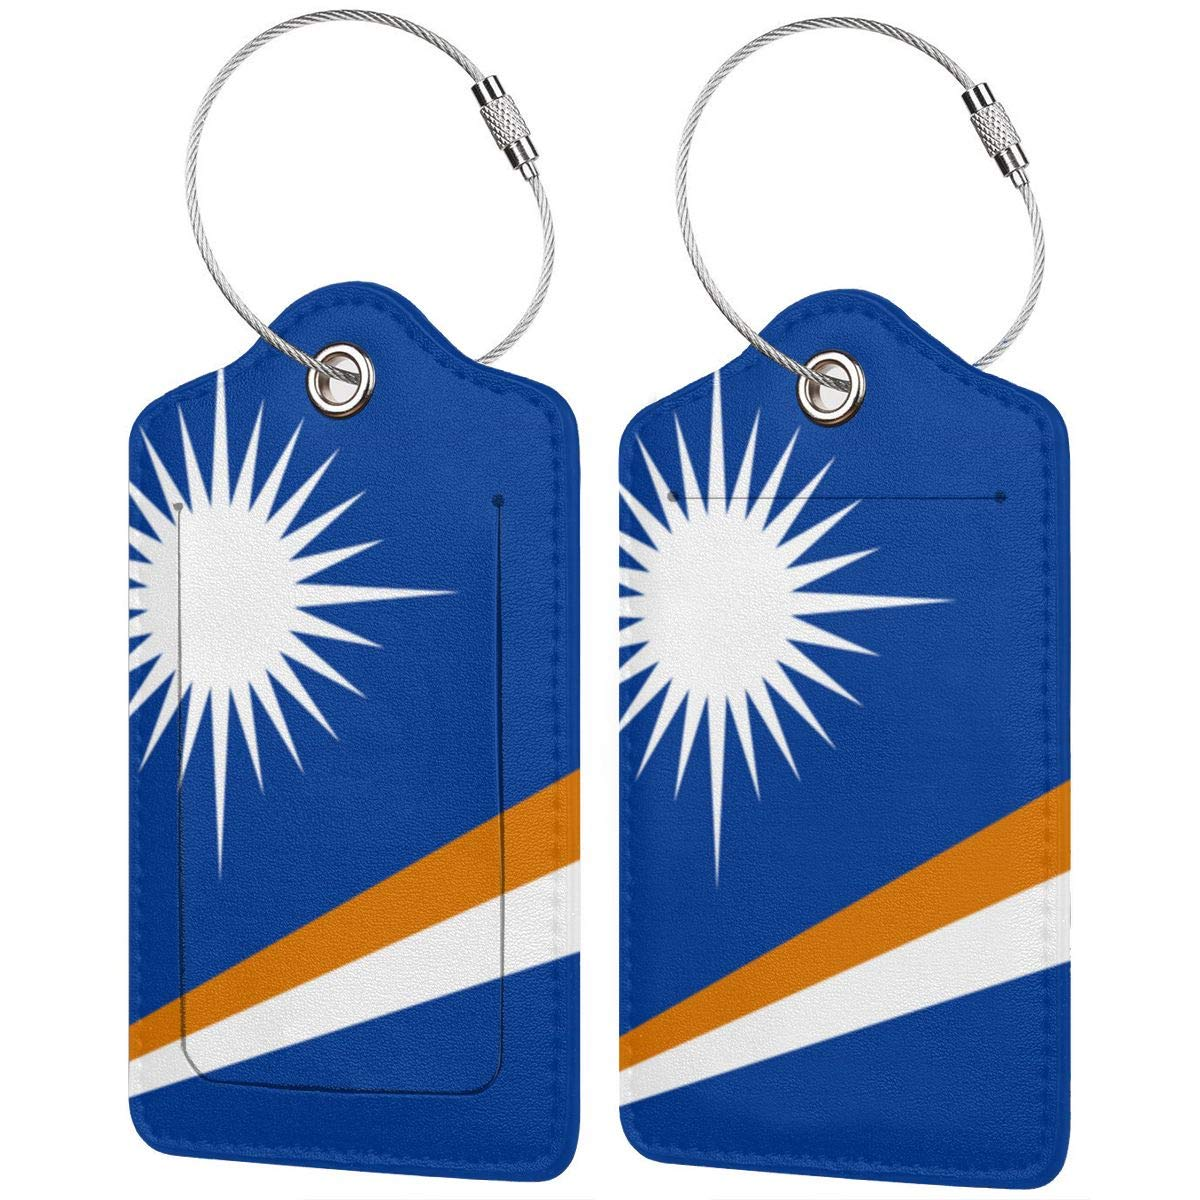 Flag Of The Marshall Islands Leather Luggage Tags Personalized Flexible Custom Travel Tags With Privacy Flap